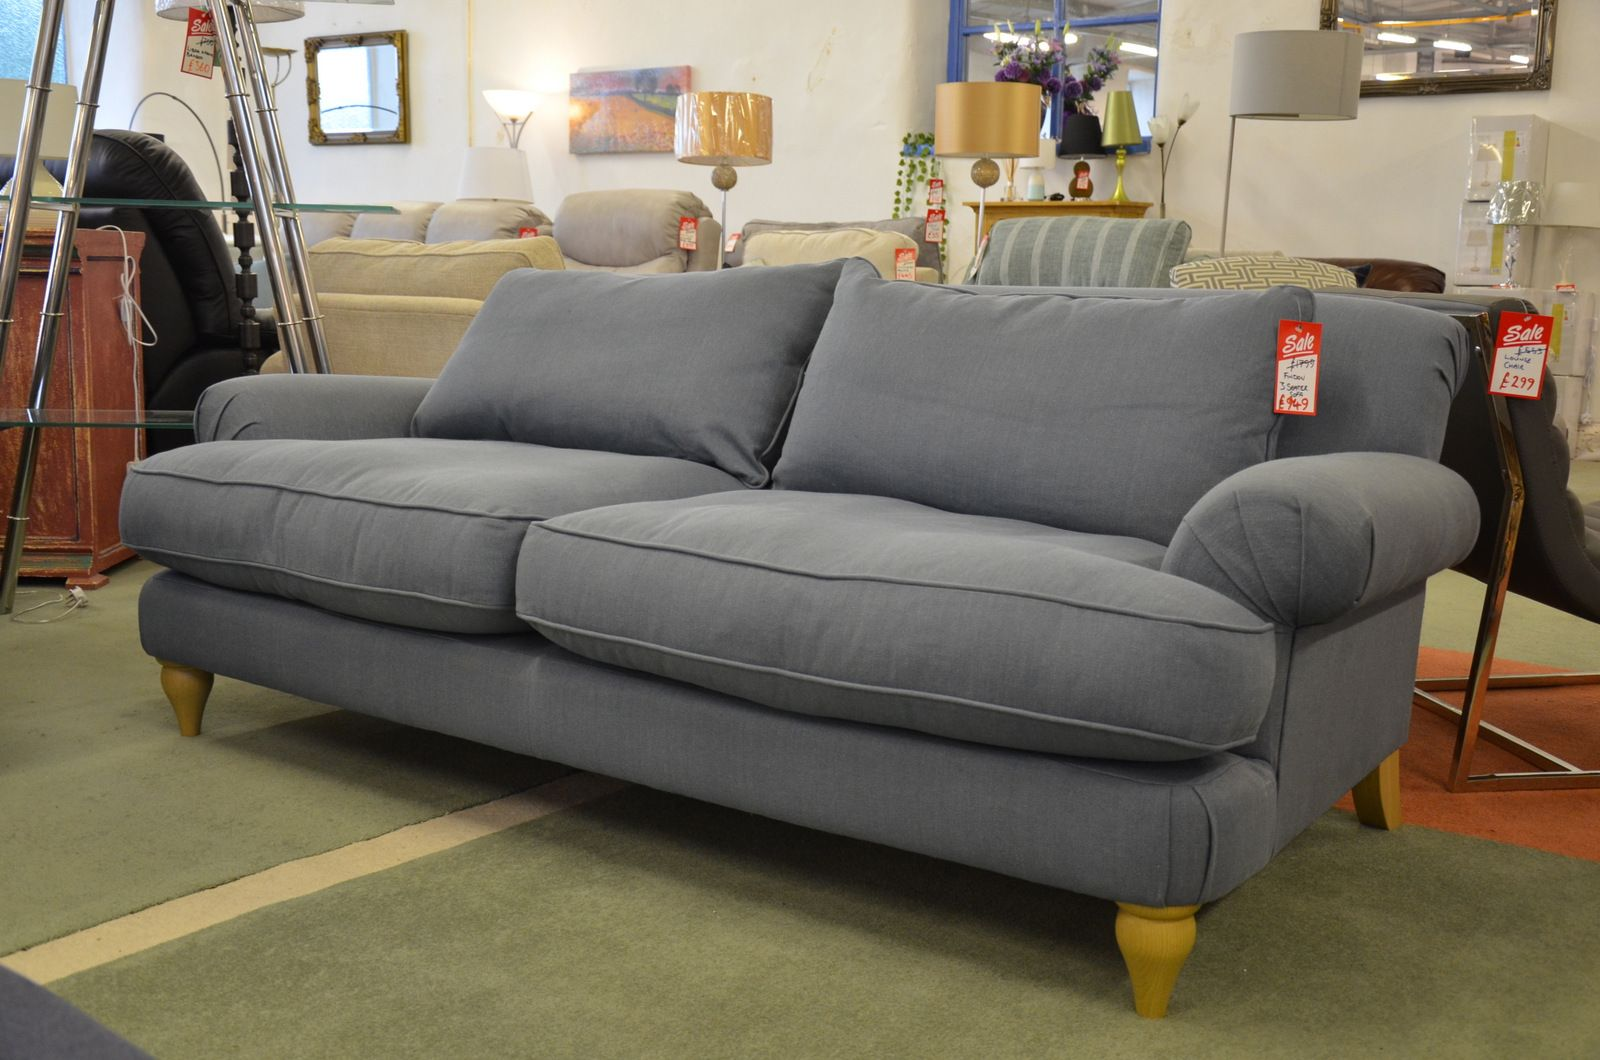 Designer Sofas John Lewis Findon Two Piece Suite 3 Seater Sofa And Armchair